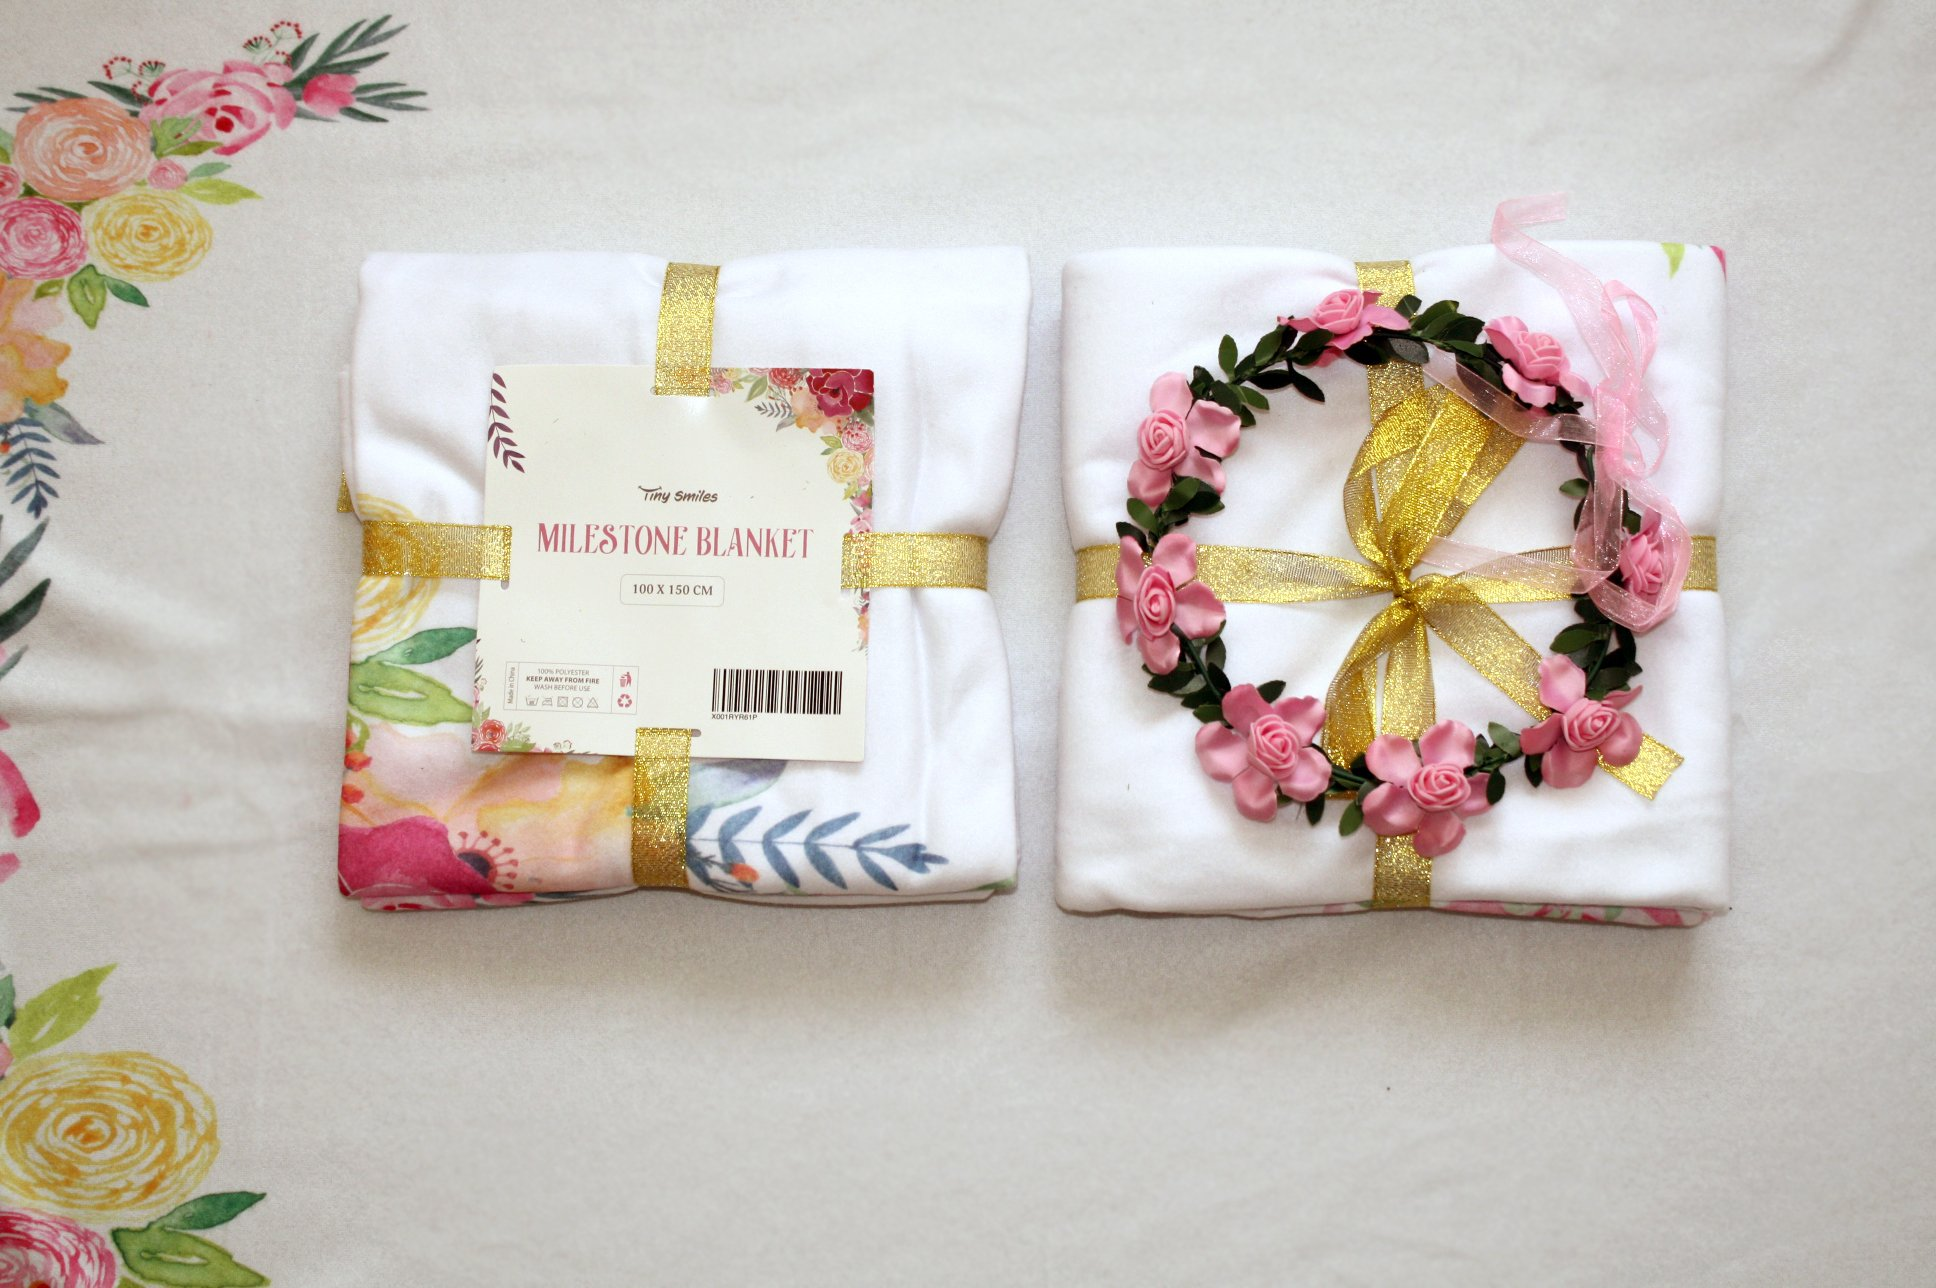 Baby Monthly Milestone Blanket Large 60''x40'' | Bonus Floral Wreath | Soft Photography Background Blanket | Newborn Girls or Boys Photo Prop | Best Baby Shower Gift for New Mom | Months Watch Me Grow by Tiny Smiles (Image #6)